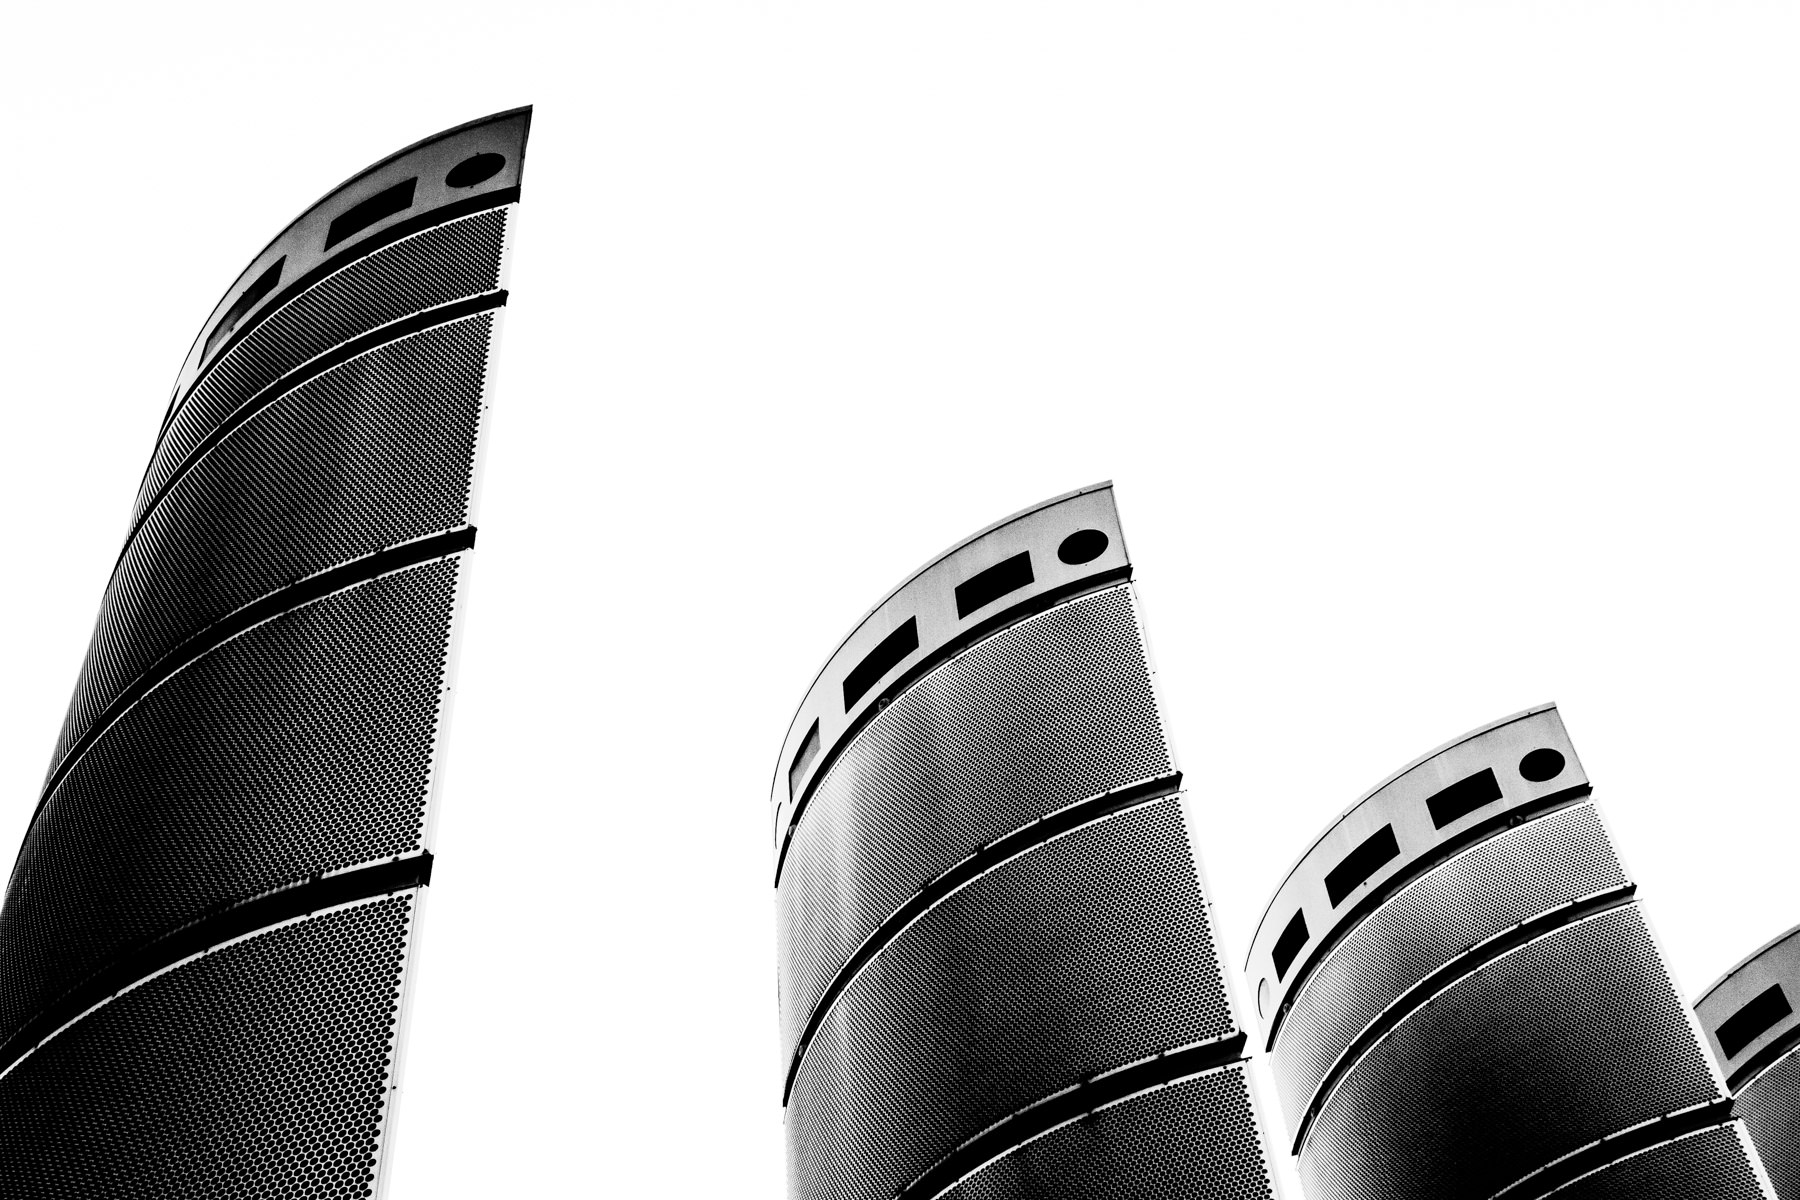 An abstract study of decorative metal towers at the entrance to Bally's Las Vegas along The Strip.